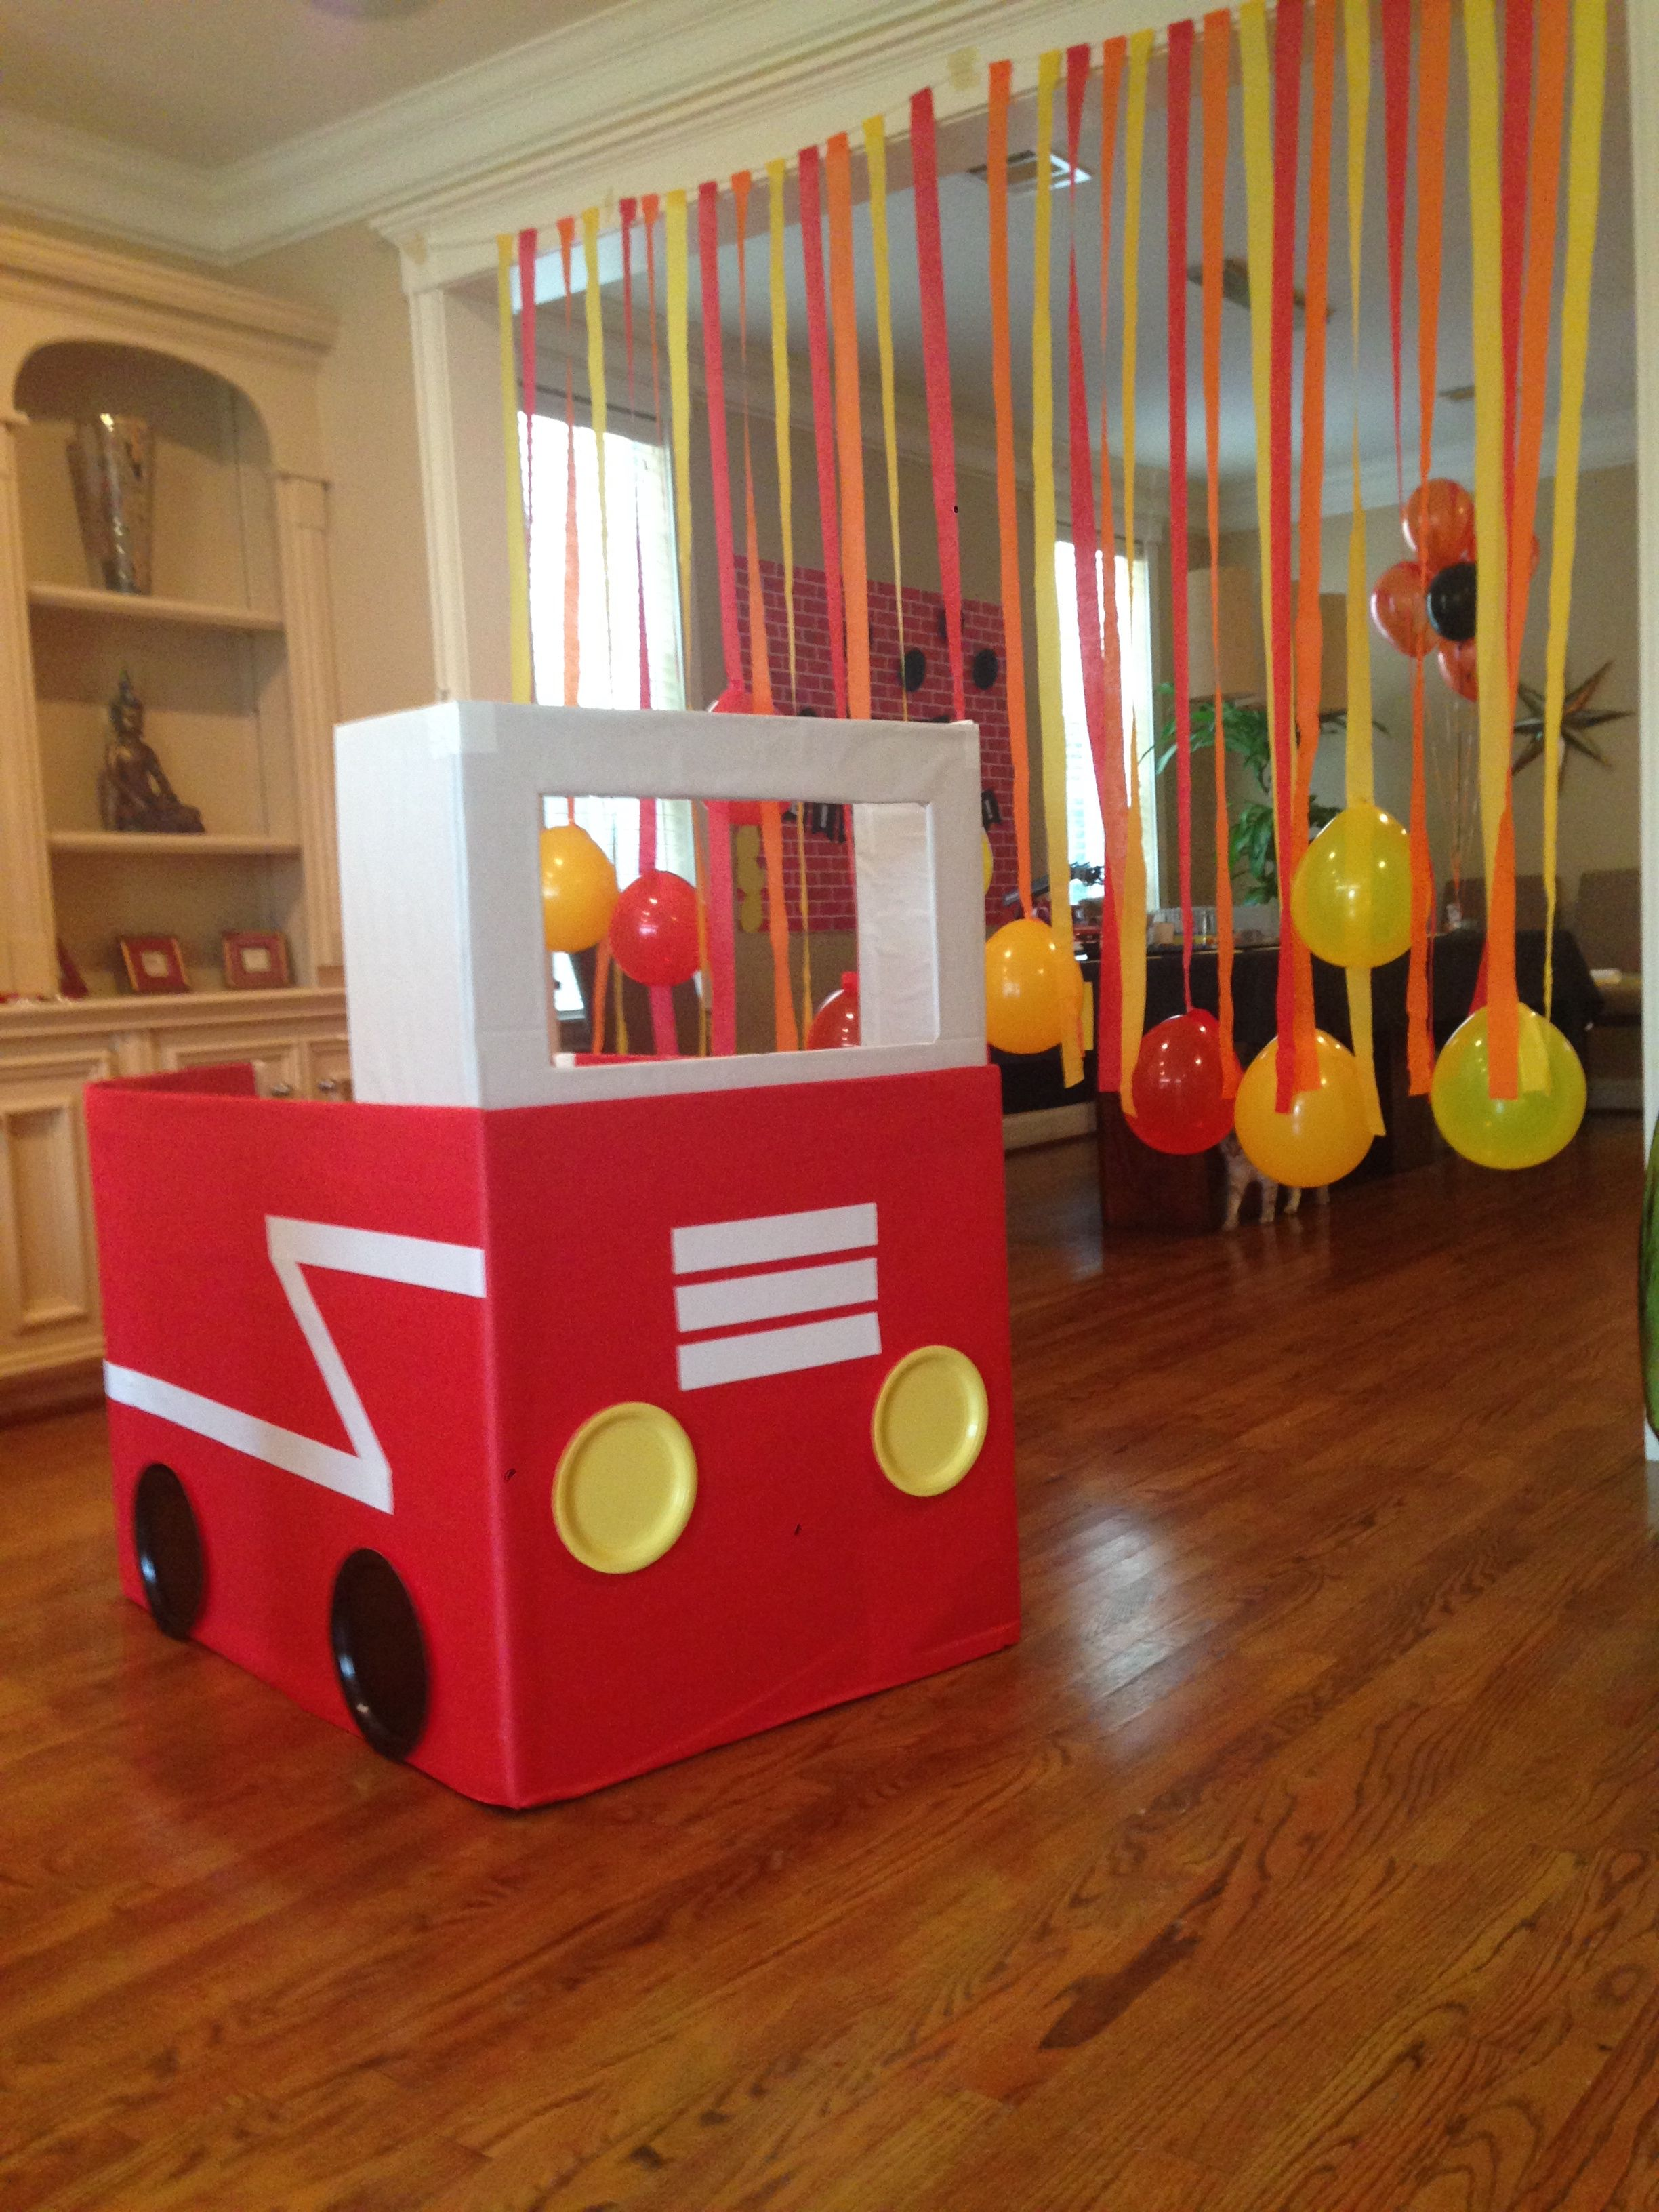 Firefighter birthday party Fire truck made with a large box and